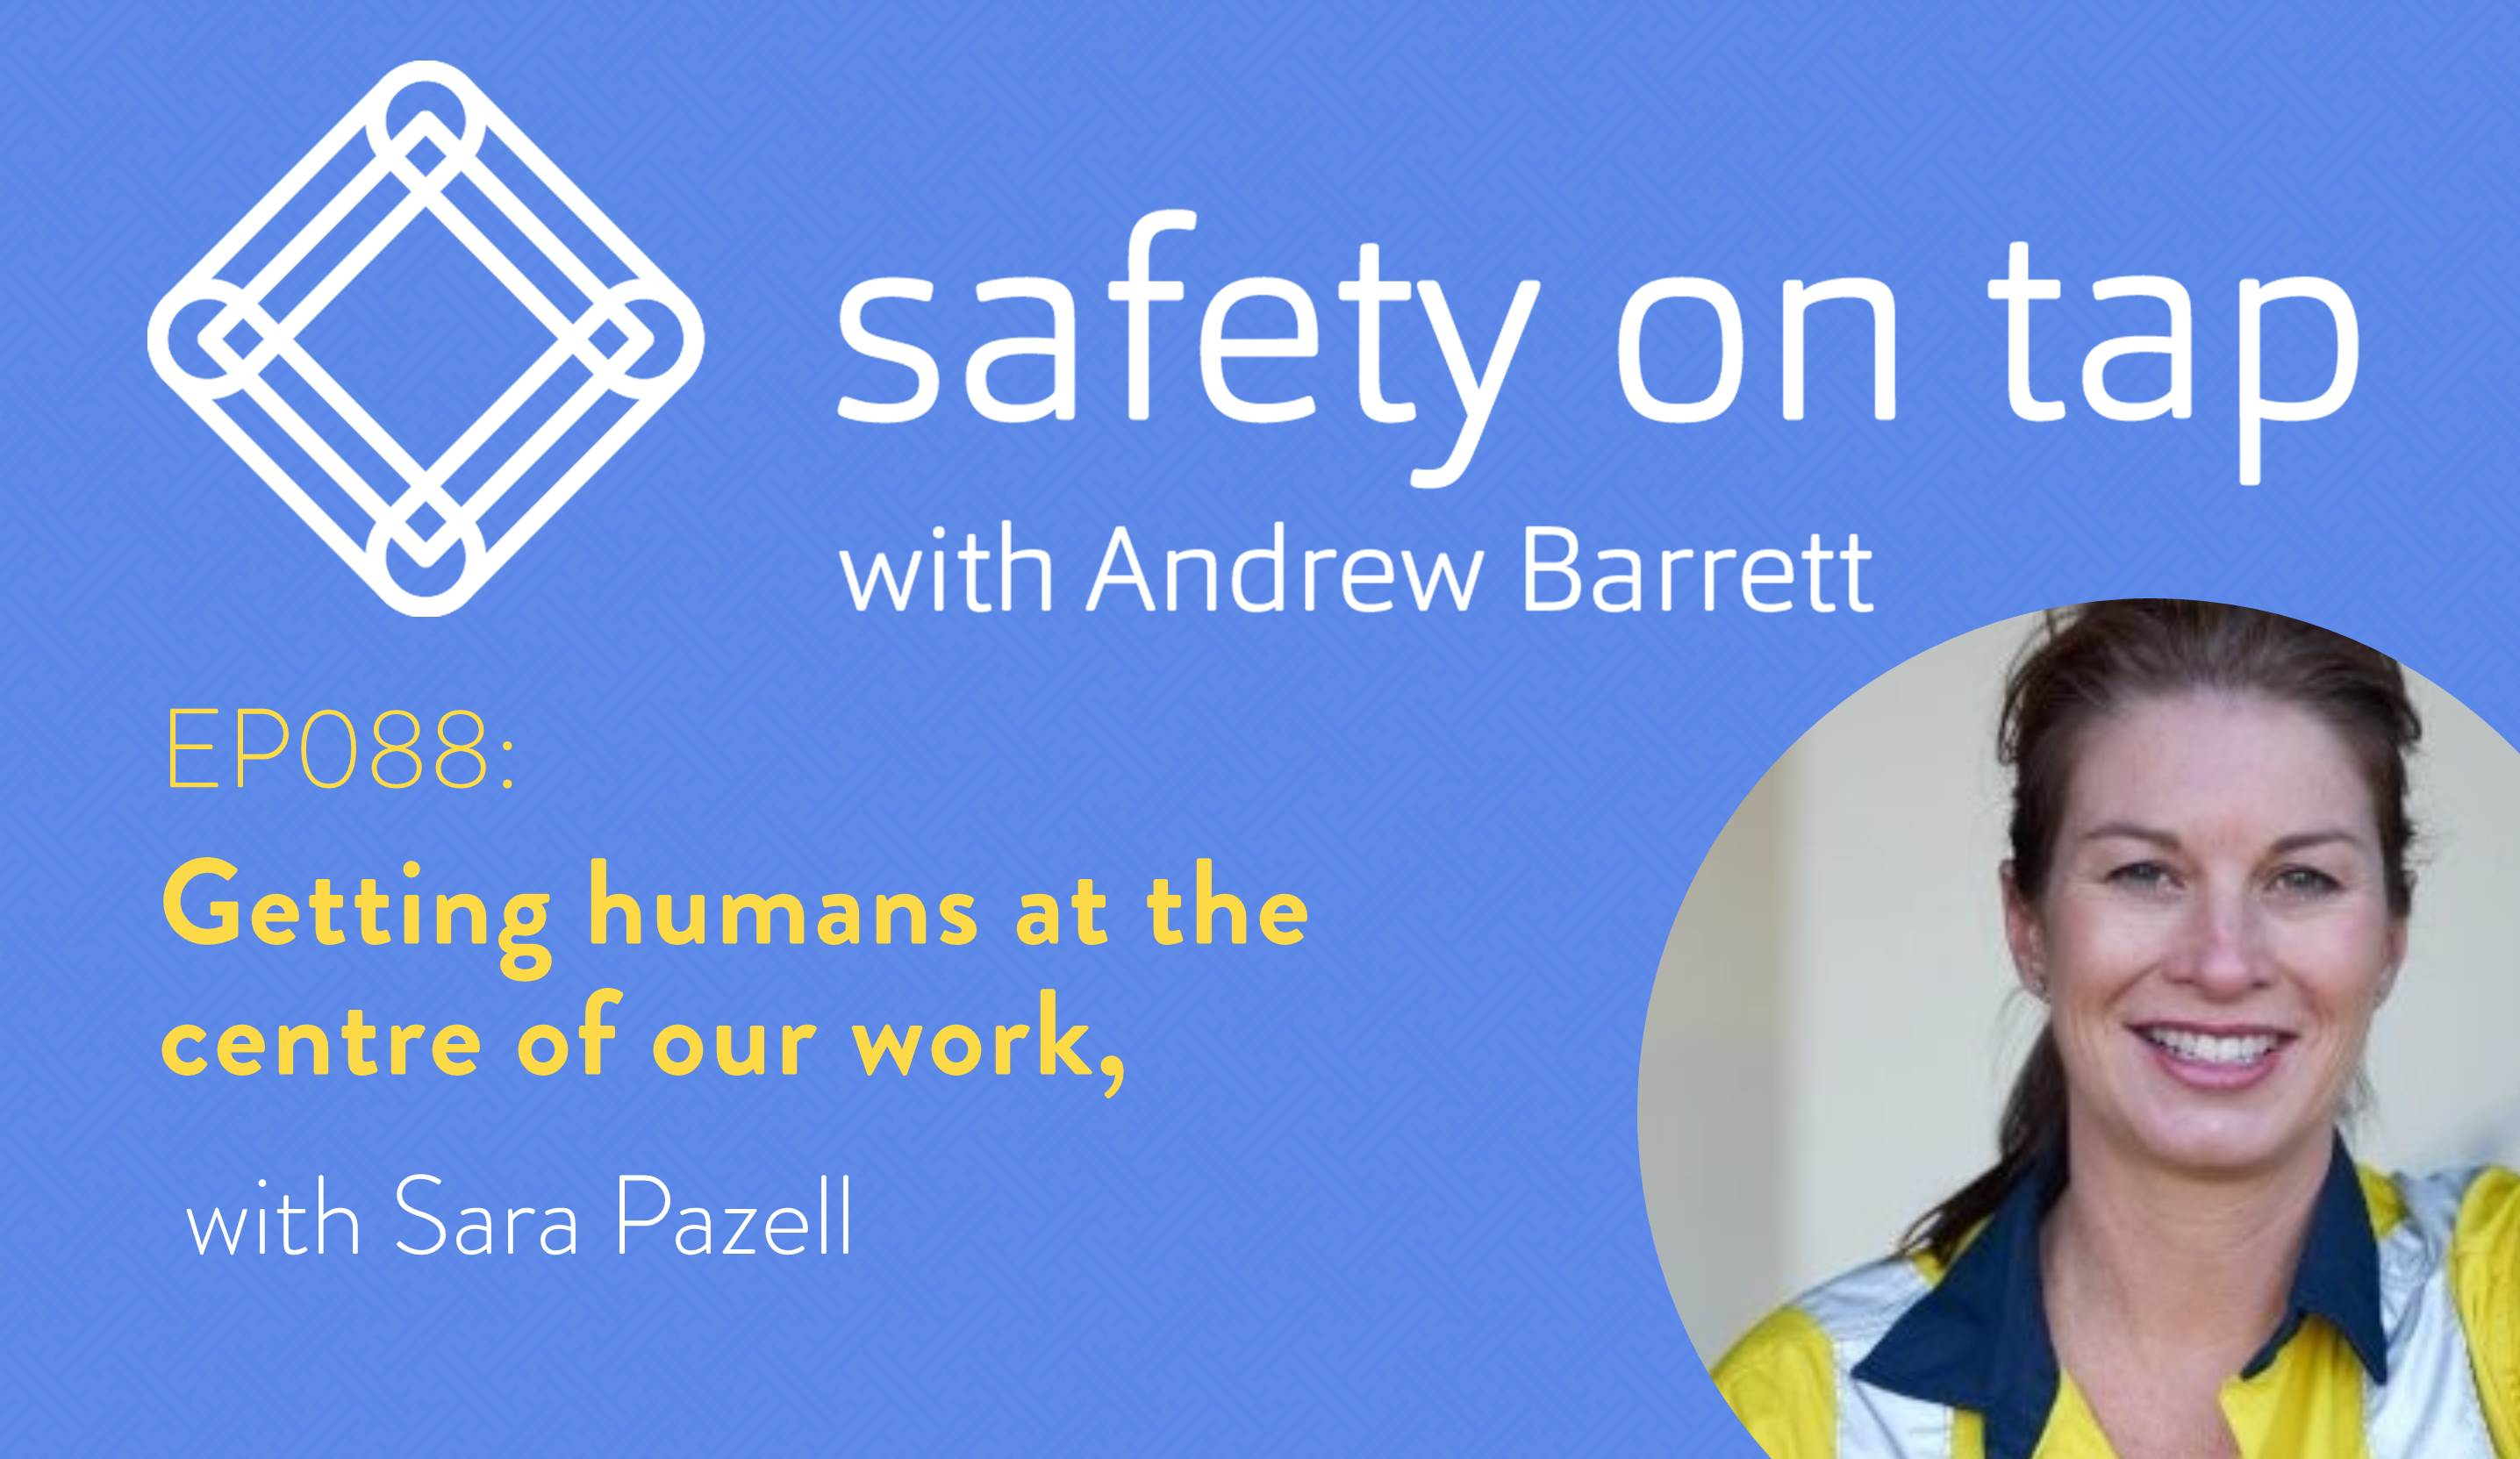 Ep088: Getting humans at the centre of our work, with Sara Pazell